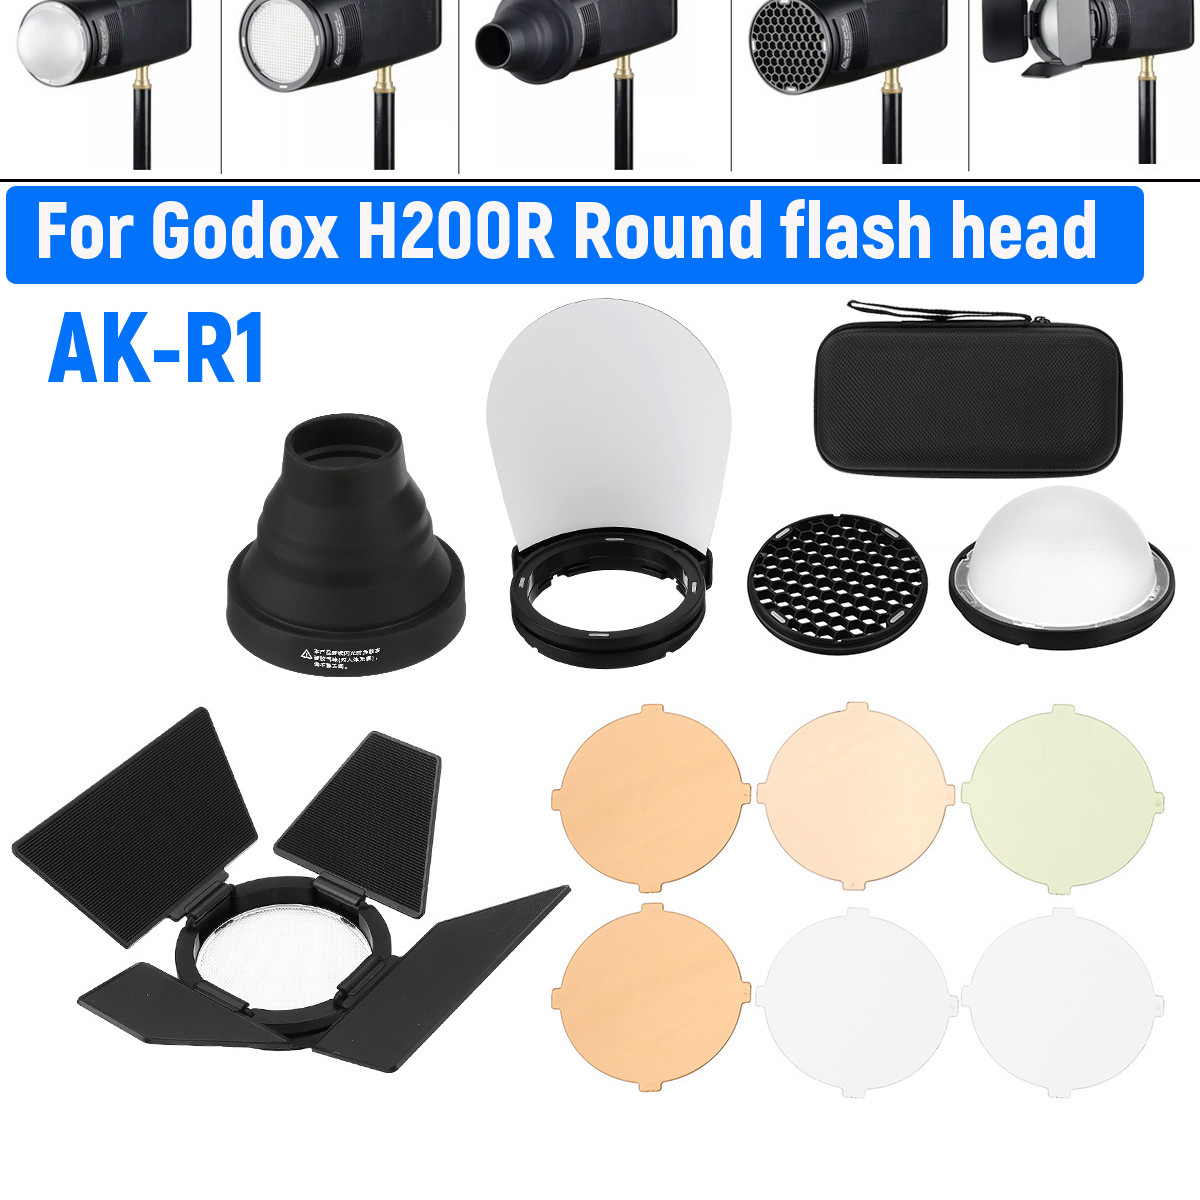 AK-R1 Barn Door Snoot Color Filter Kits Reflector Honeycomb Diffuser Ball Kits For Godox H200R Round Flash Head